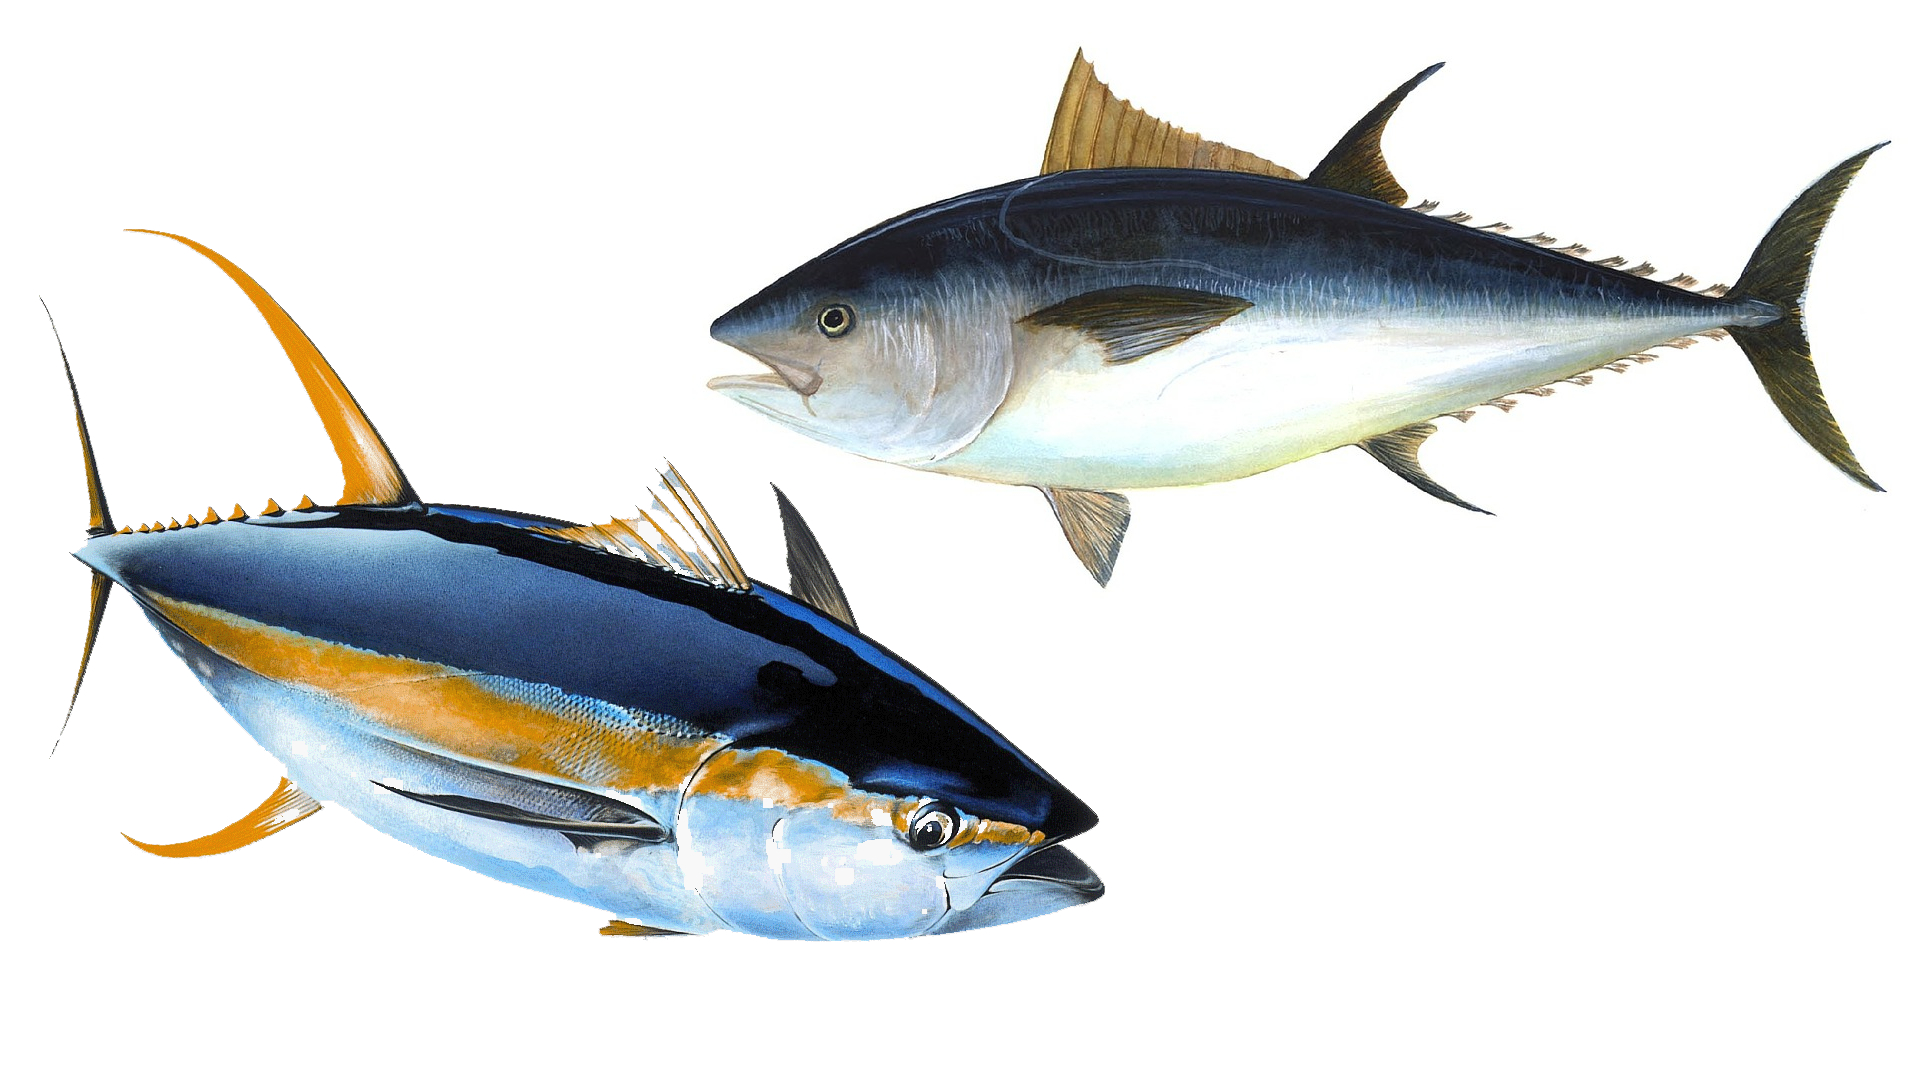 illustrations of bigeye and yellowfin tuna